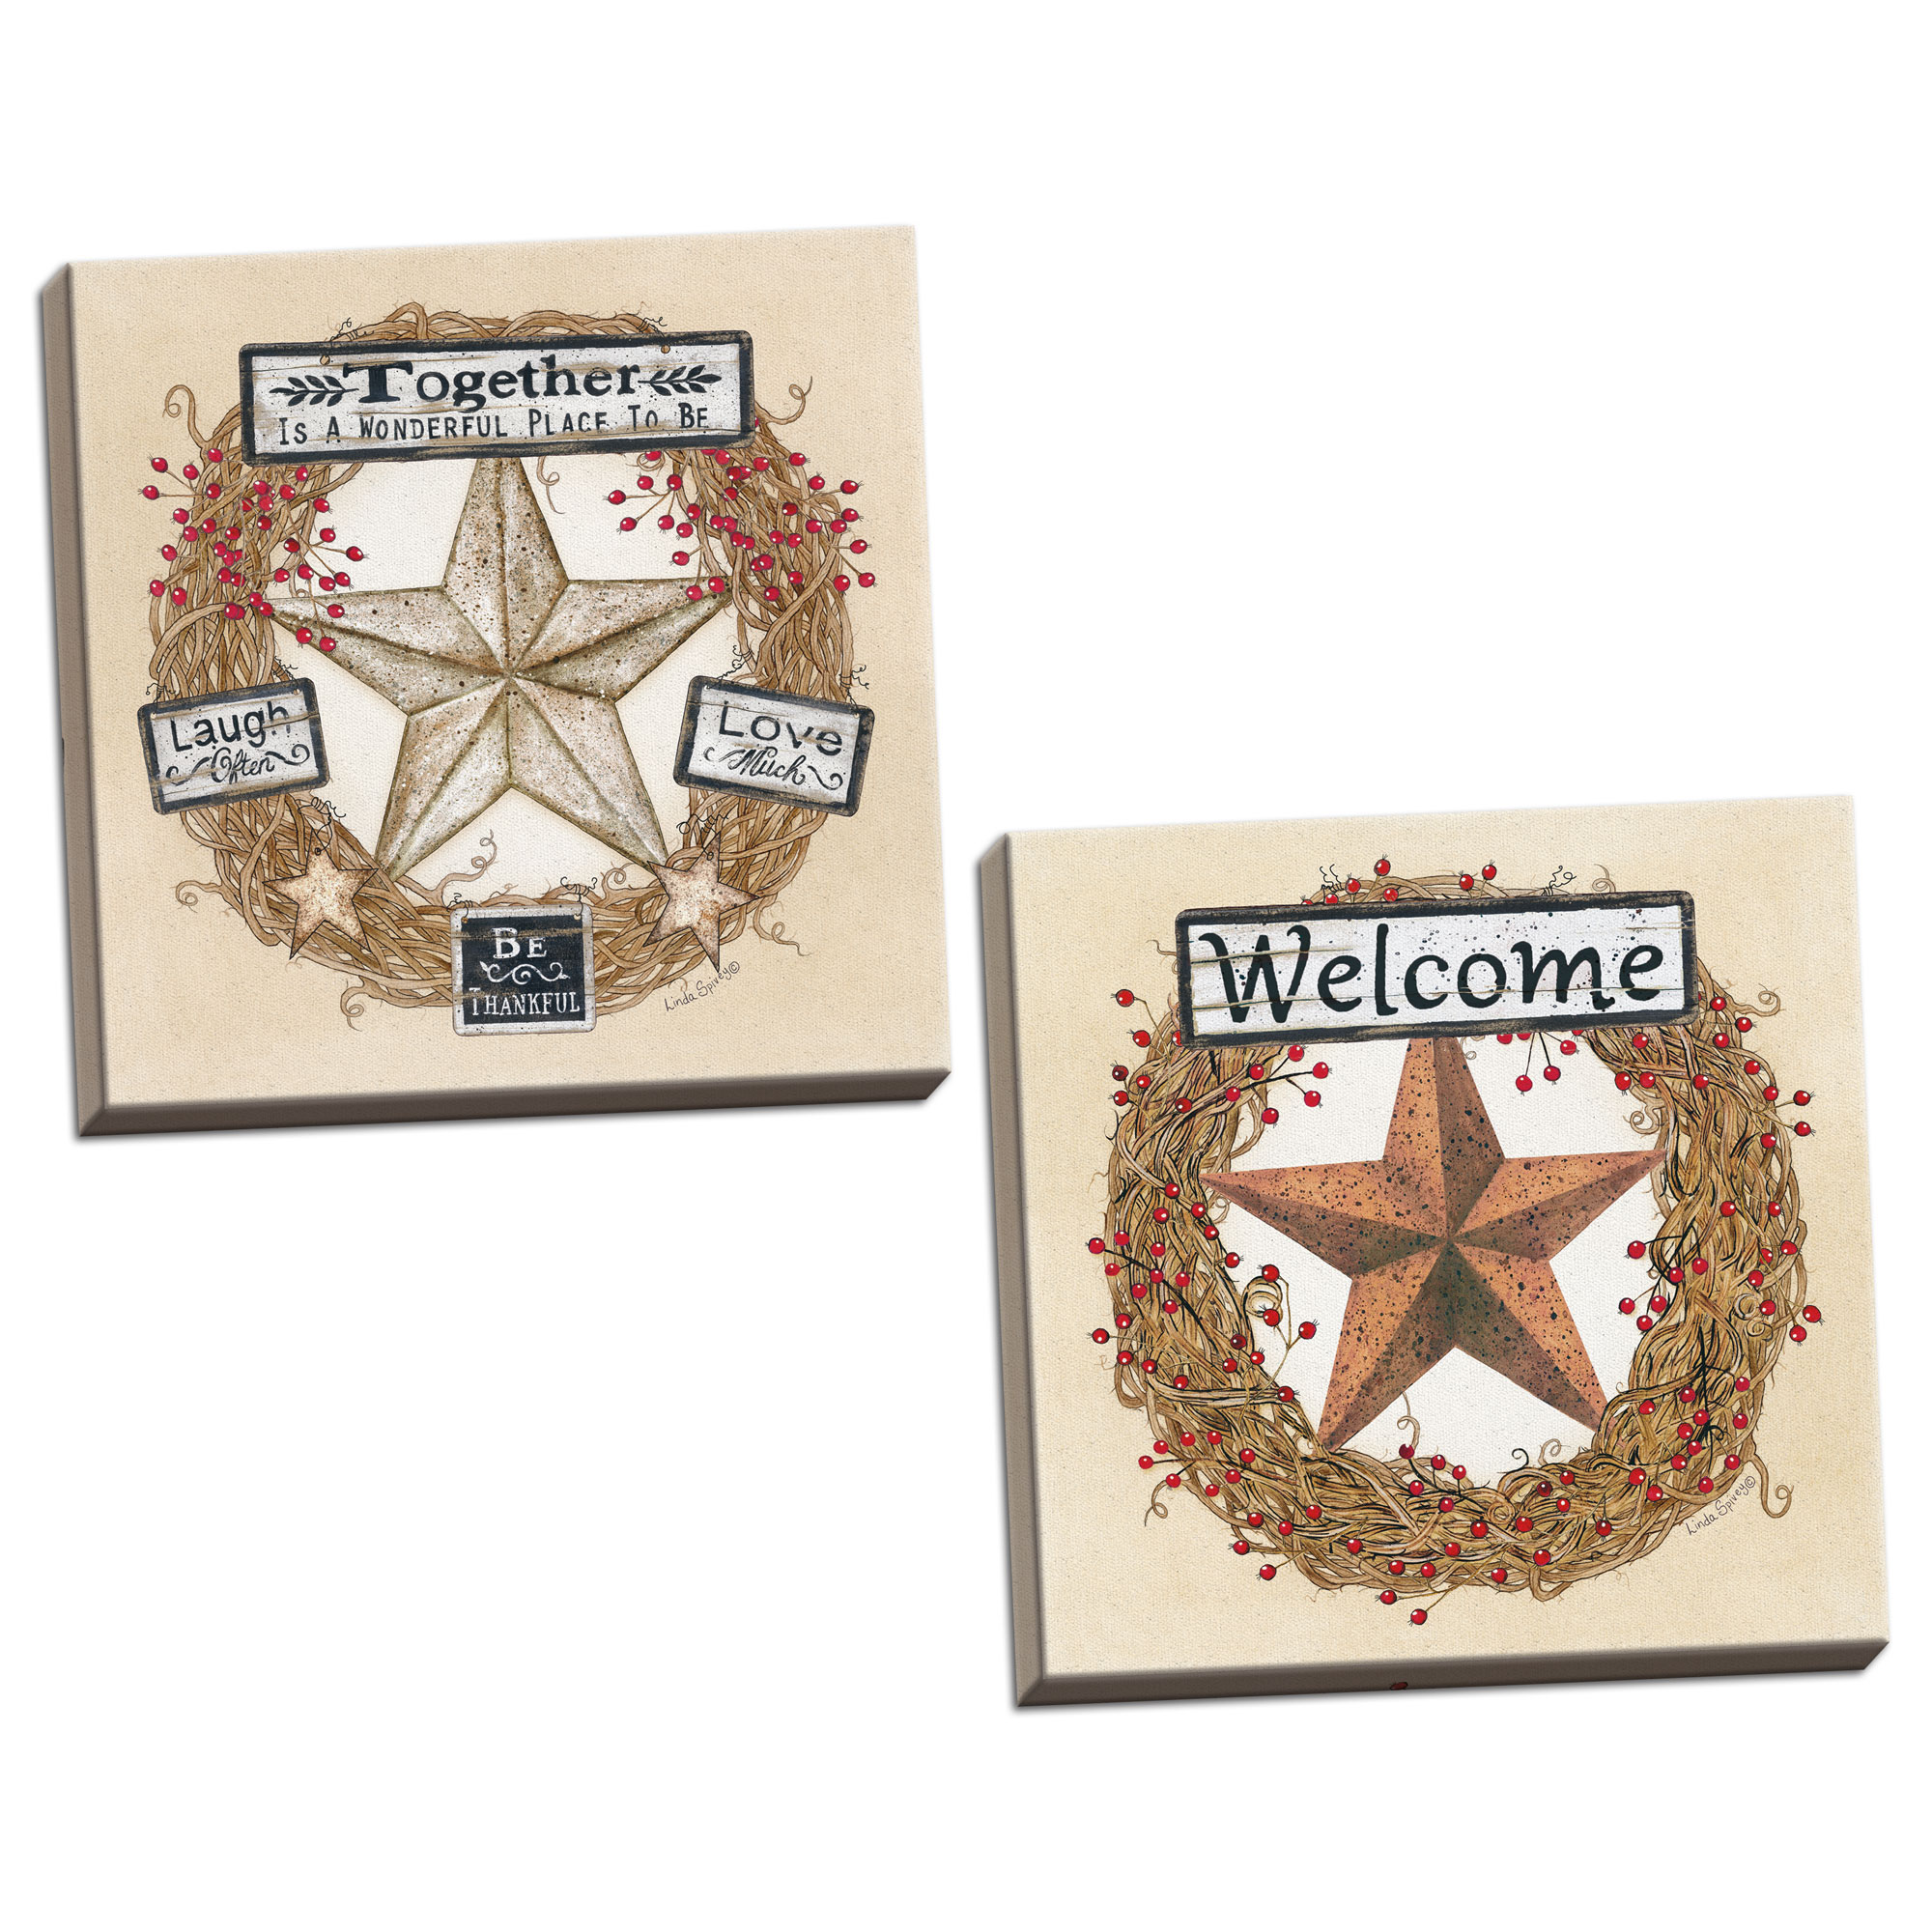 Gango Home Decor Country-Rustic Barn Star Wreath & Barn Star Welcome Wreath by Linda Spivey (Ready to Hang); Two 12x12in Hand-Stretched Canvases